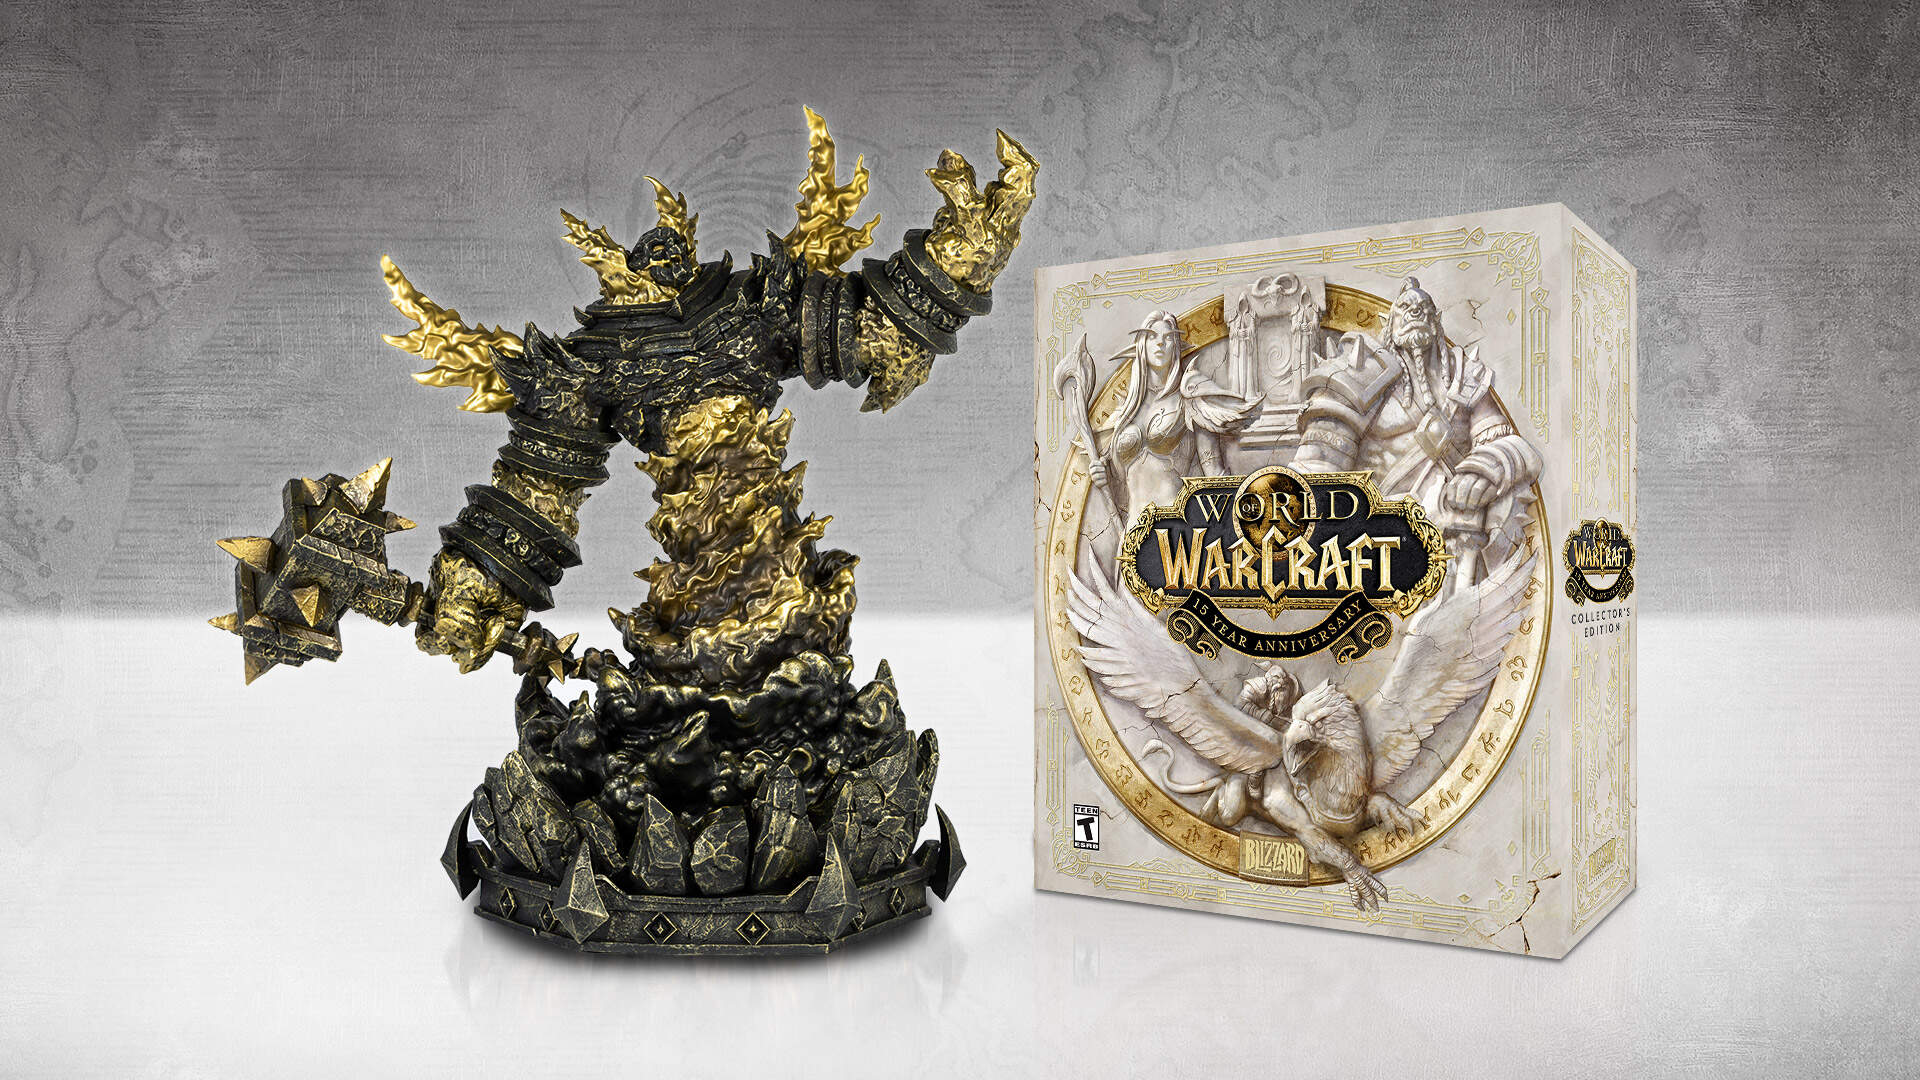 World of Warcraft Celebrates 15th Anniversary With New Collector's Edition This October